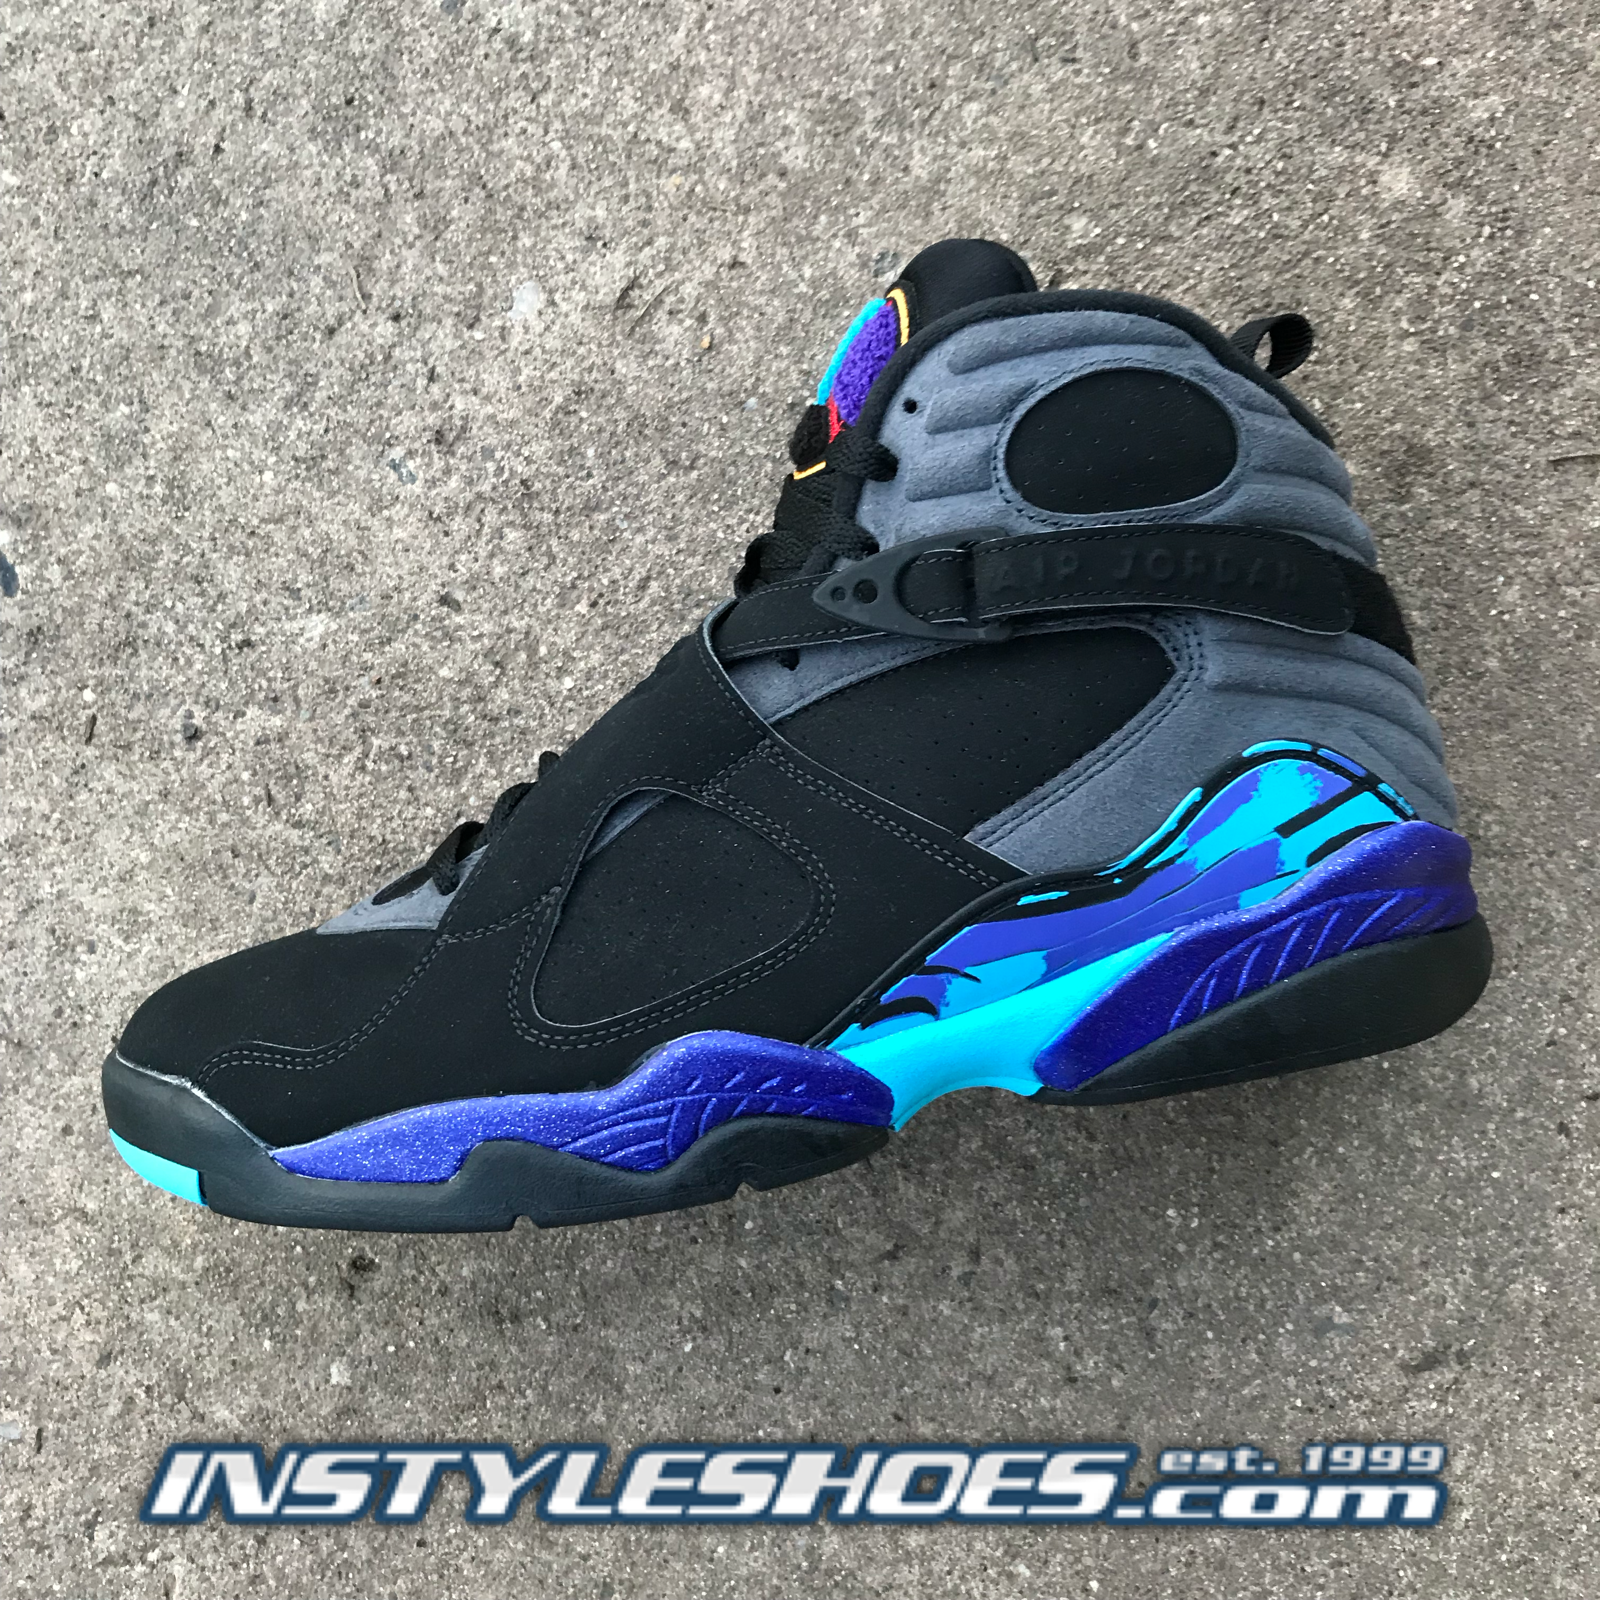 Nike Air Jordan 8 VIII Retro Aqua Aqua Aqua 2015 Remastered 305381-025 efc891